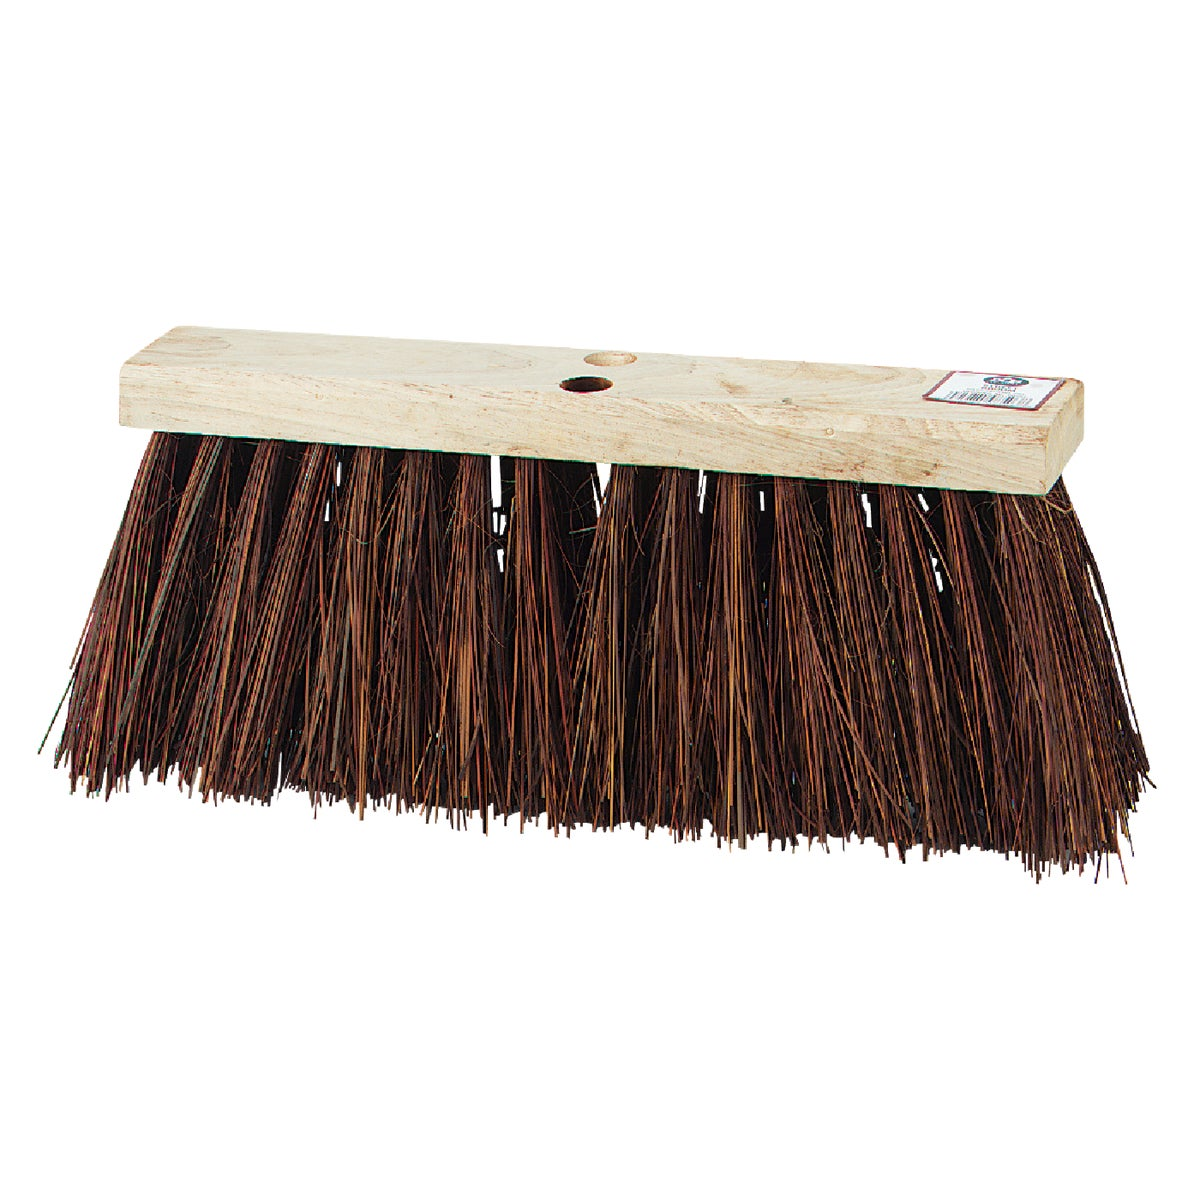 "16"" NATURAL PUSH BROOM - 08503 by D Q B Ind"